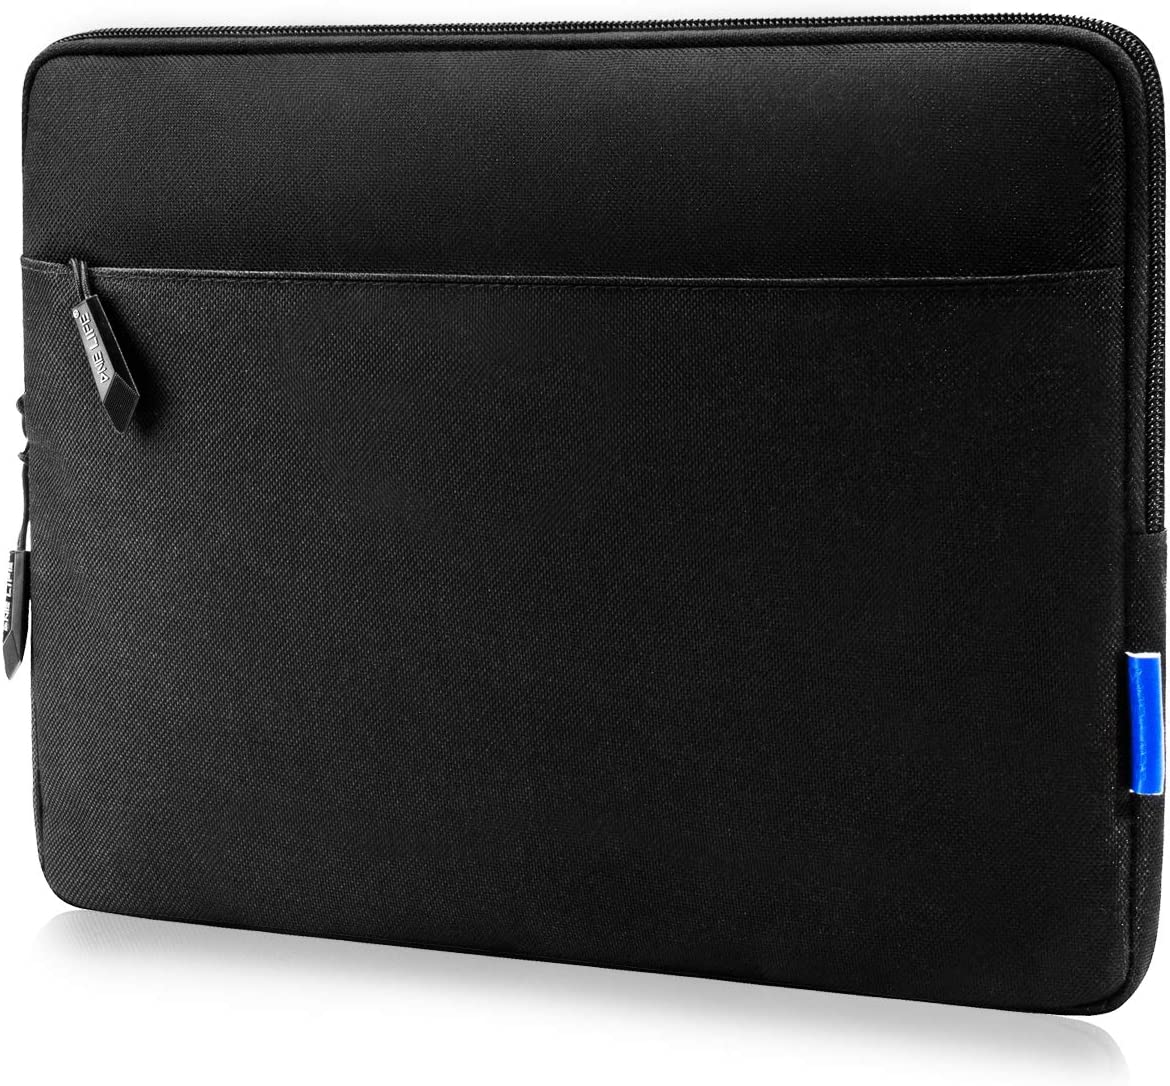 ONE LIFE 11.5-12.3 Inch Laptop Sleeve Compatible with MacBook Air 11 Inch, Dell HP Chromebook Surface Pro Lenovo Acer, Protective Case with Accessory Pocket(11.5-12.3 Inch, Black)